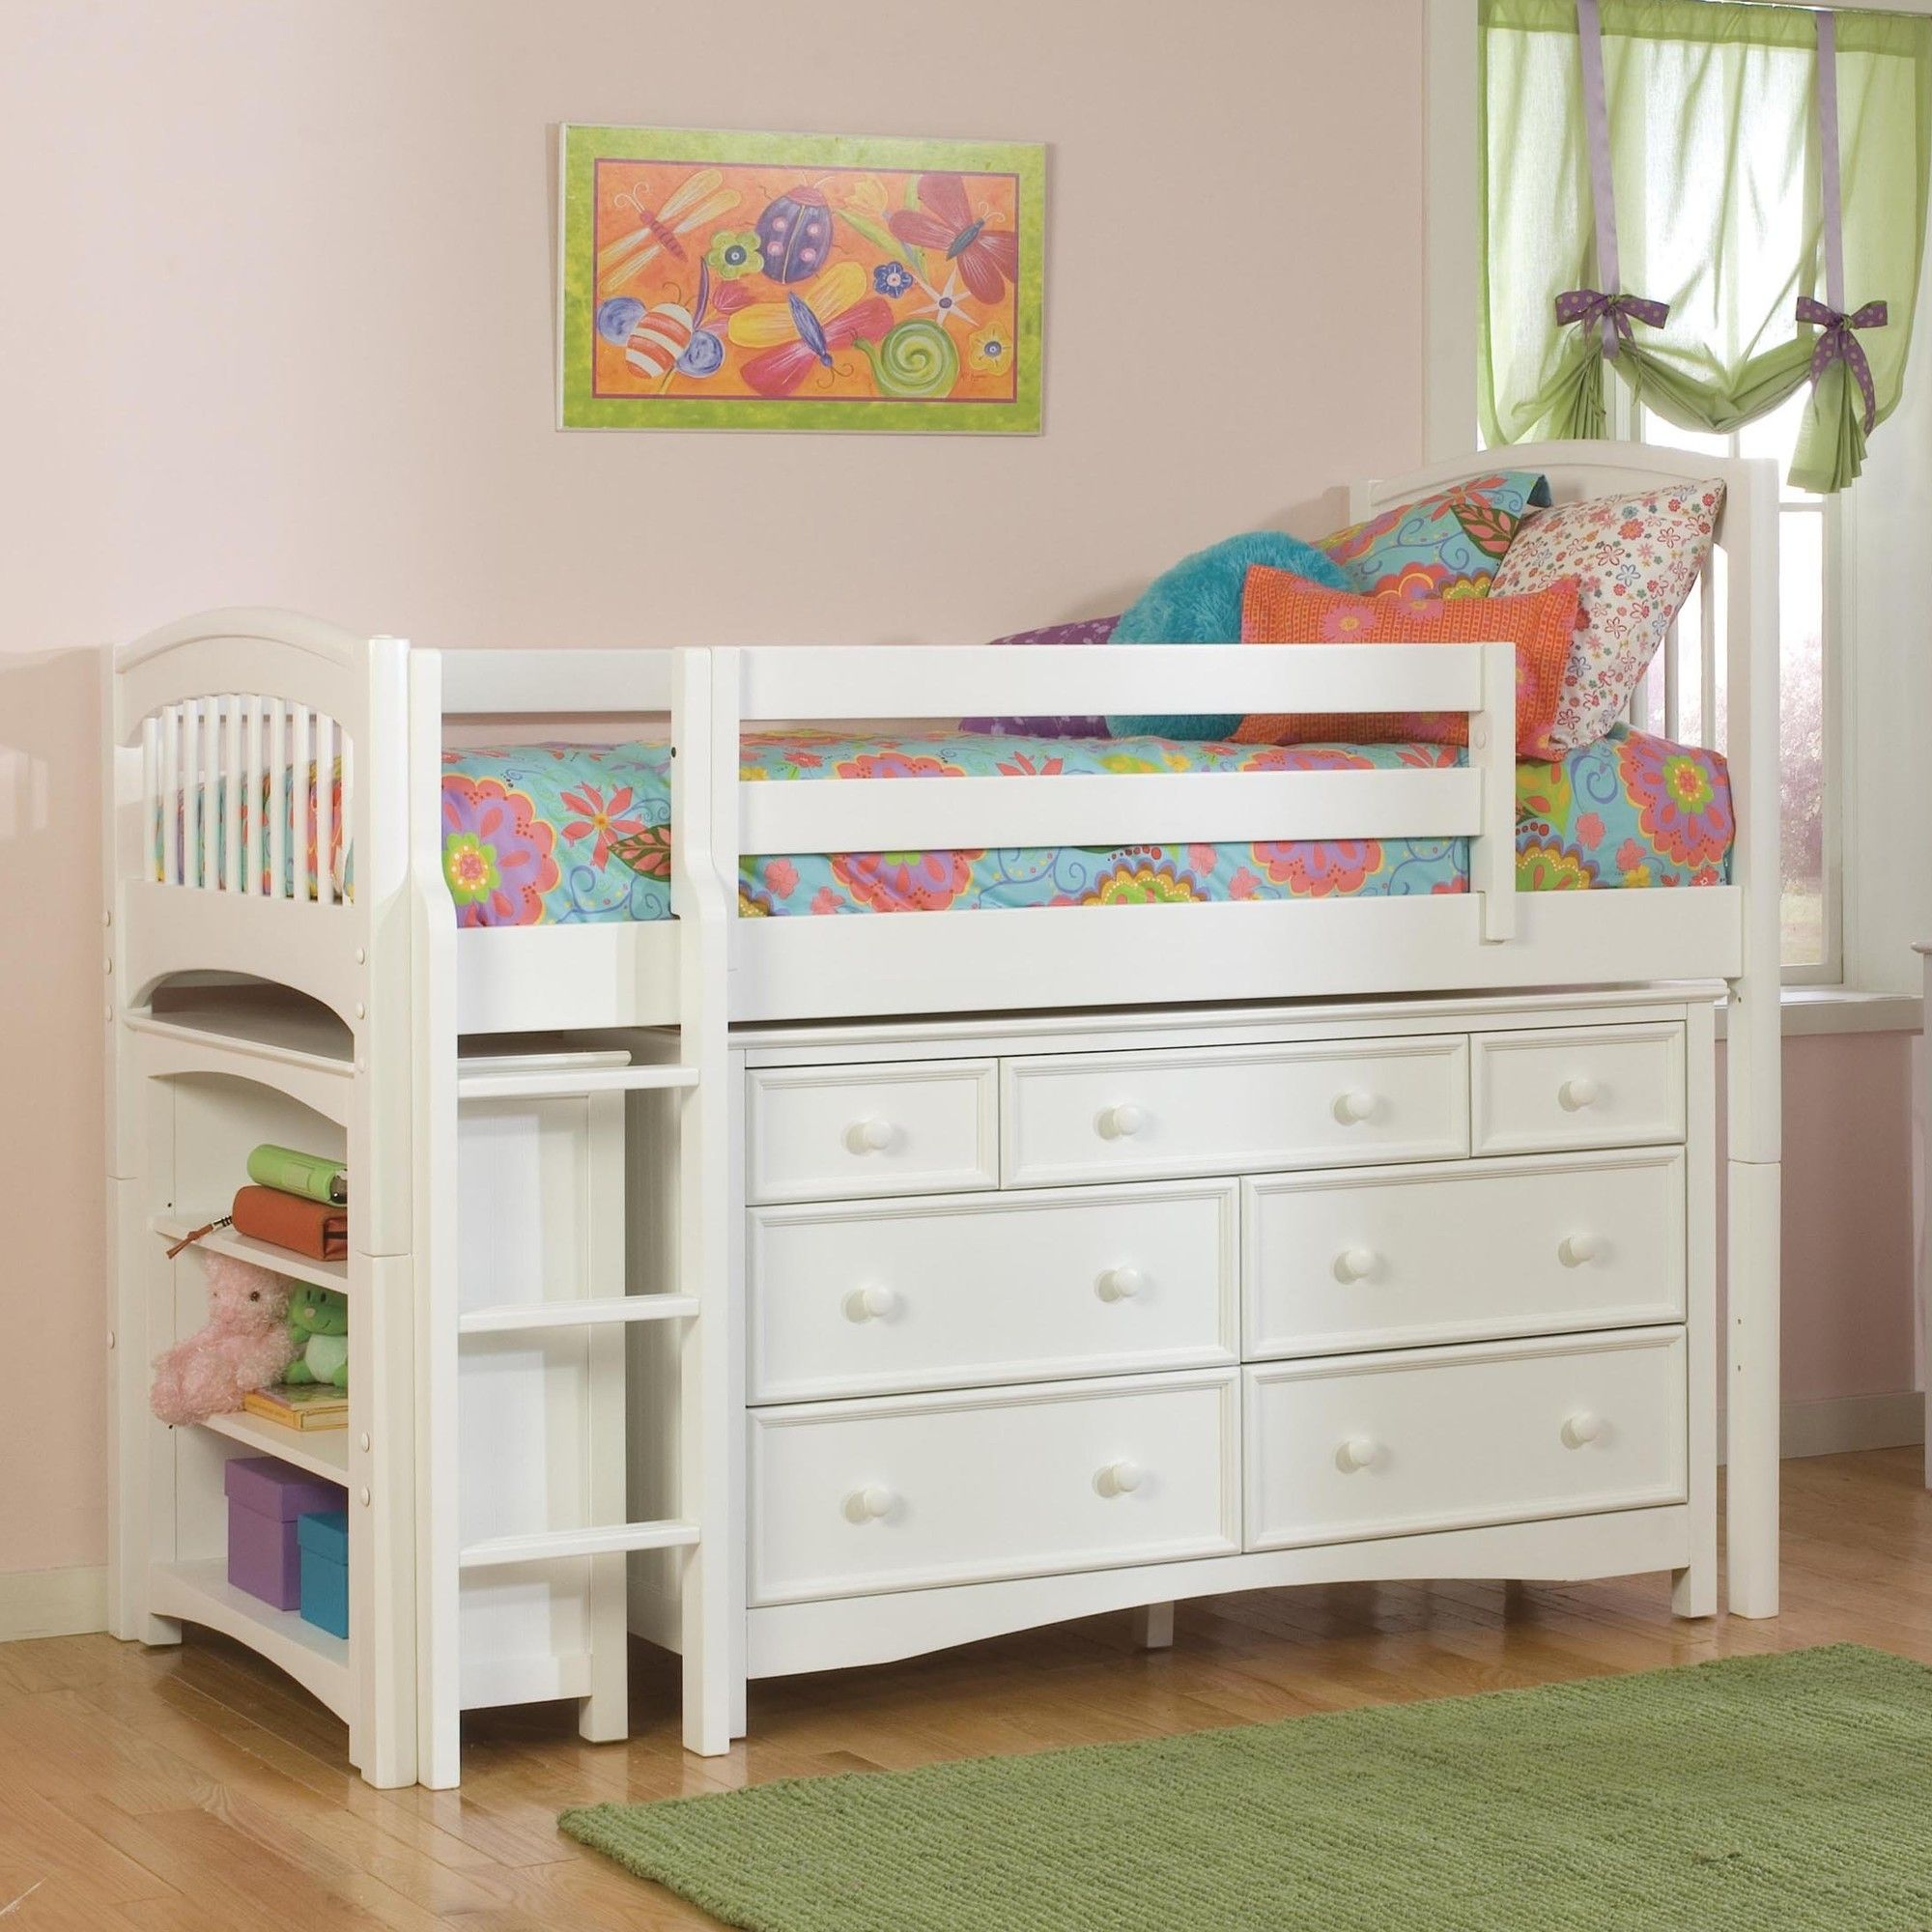 Bolton Furniture Windsor Twin Low Loft Bed with Bookcase